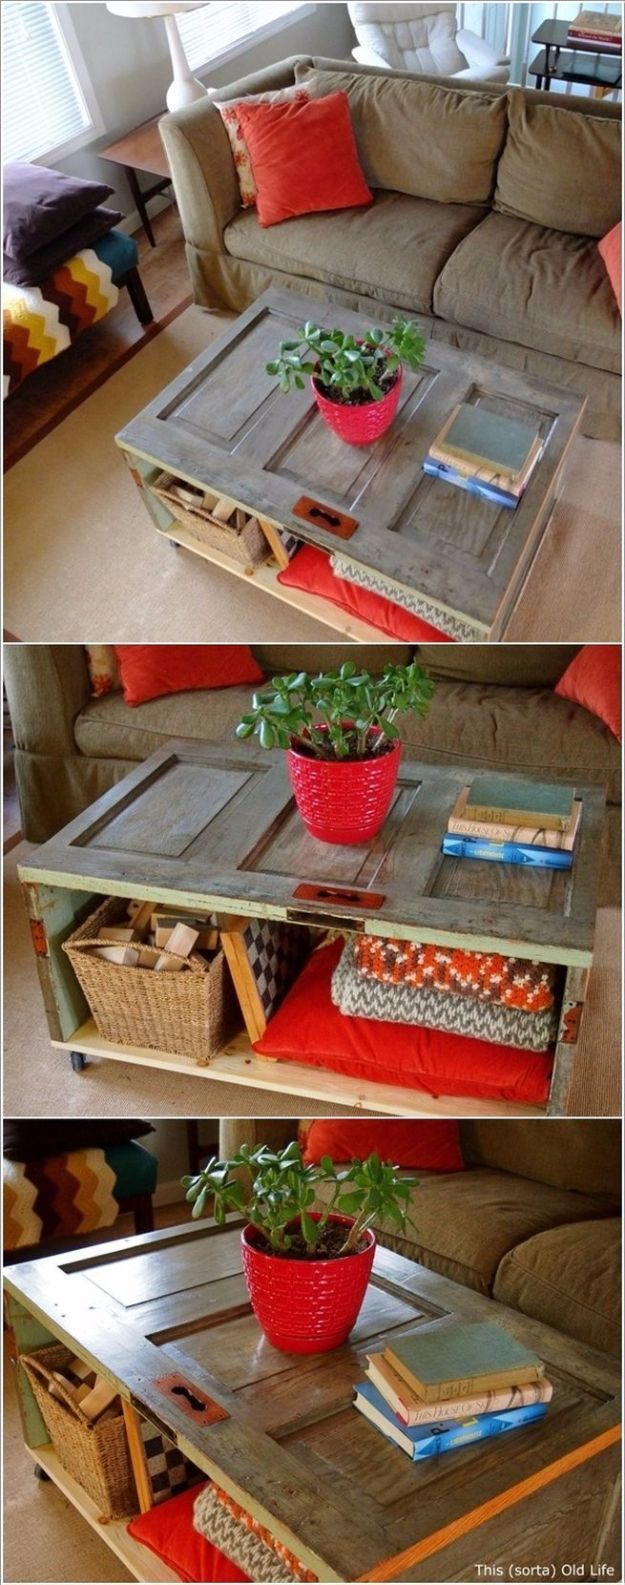 DIY Repurposed Furniture Projects   Easy Upcycling Ideas for the Home   DIY Coffee Table with Storage   DIY Projects and Crafts by DIY JOY